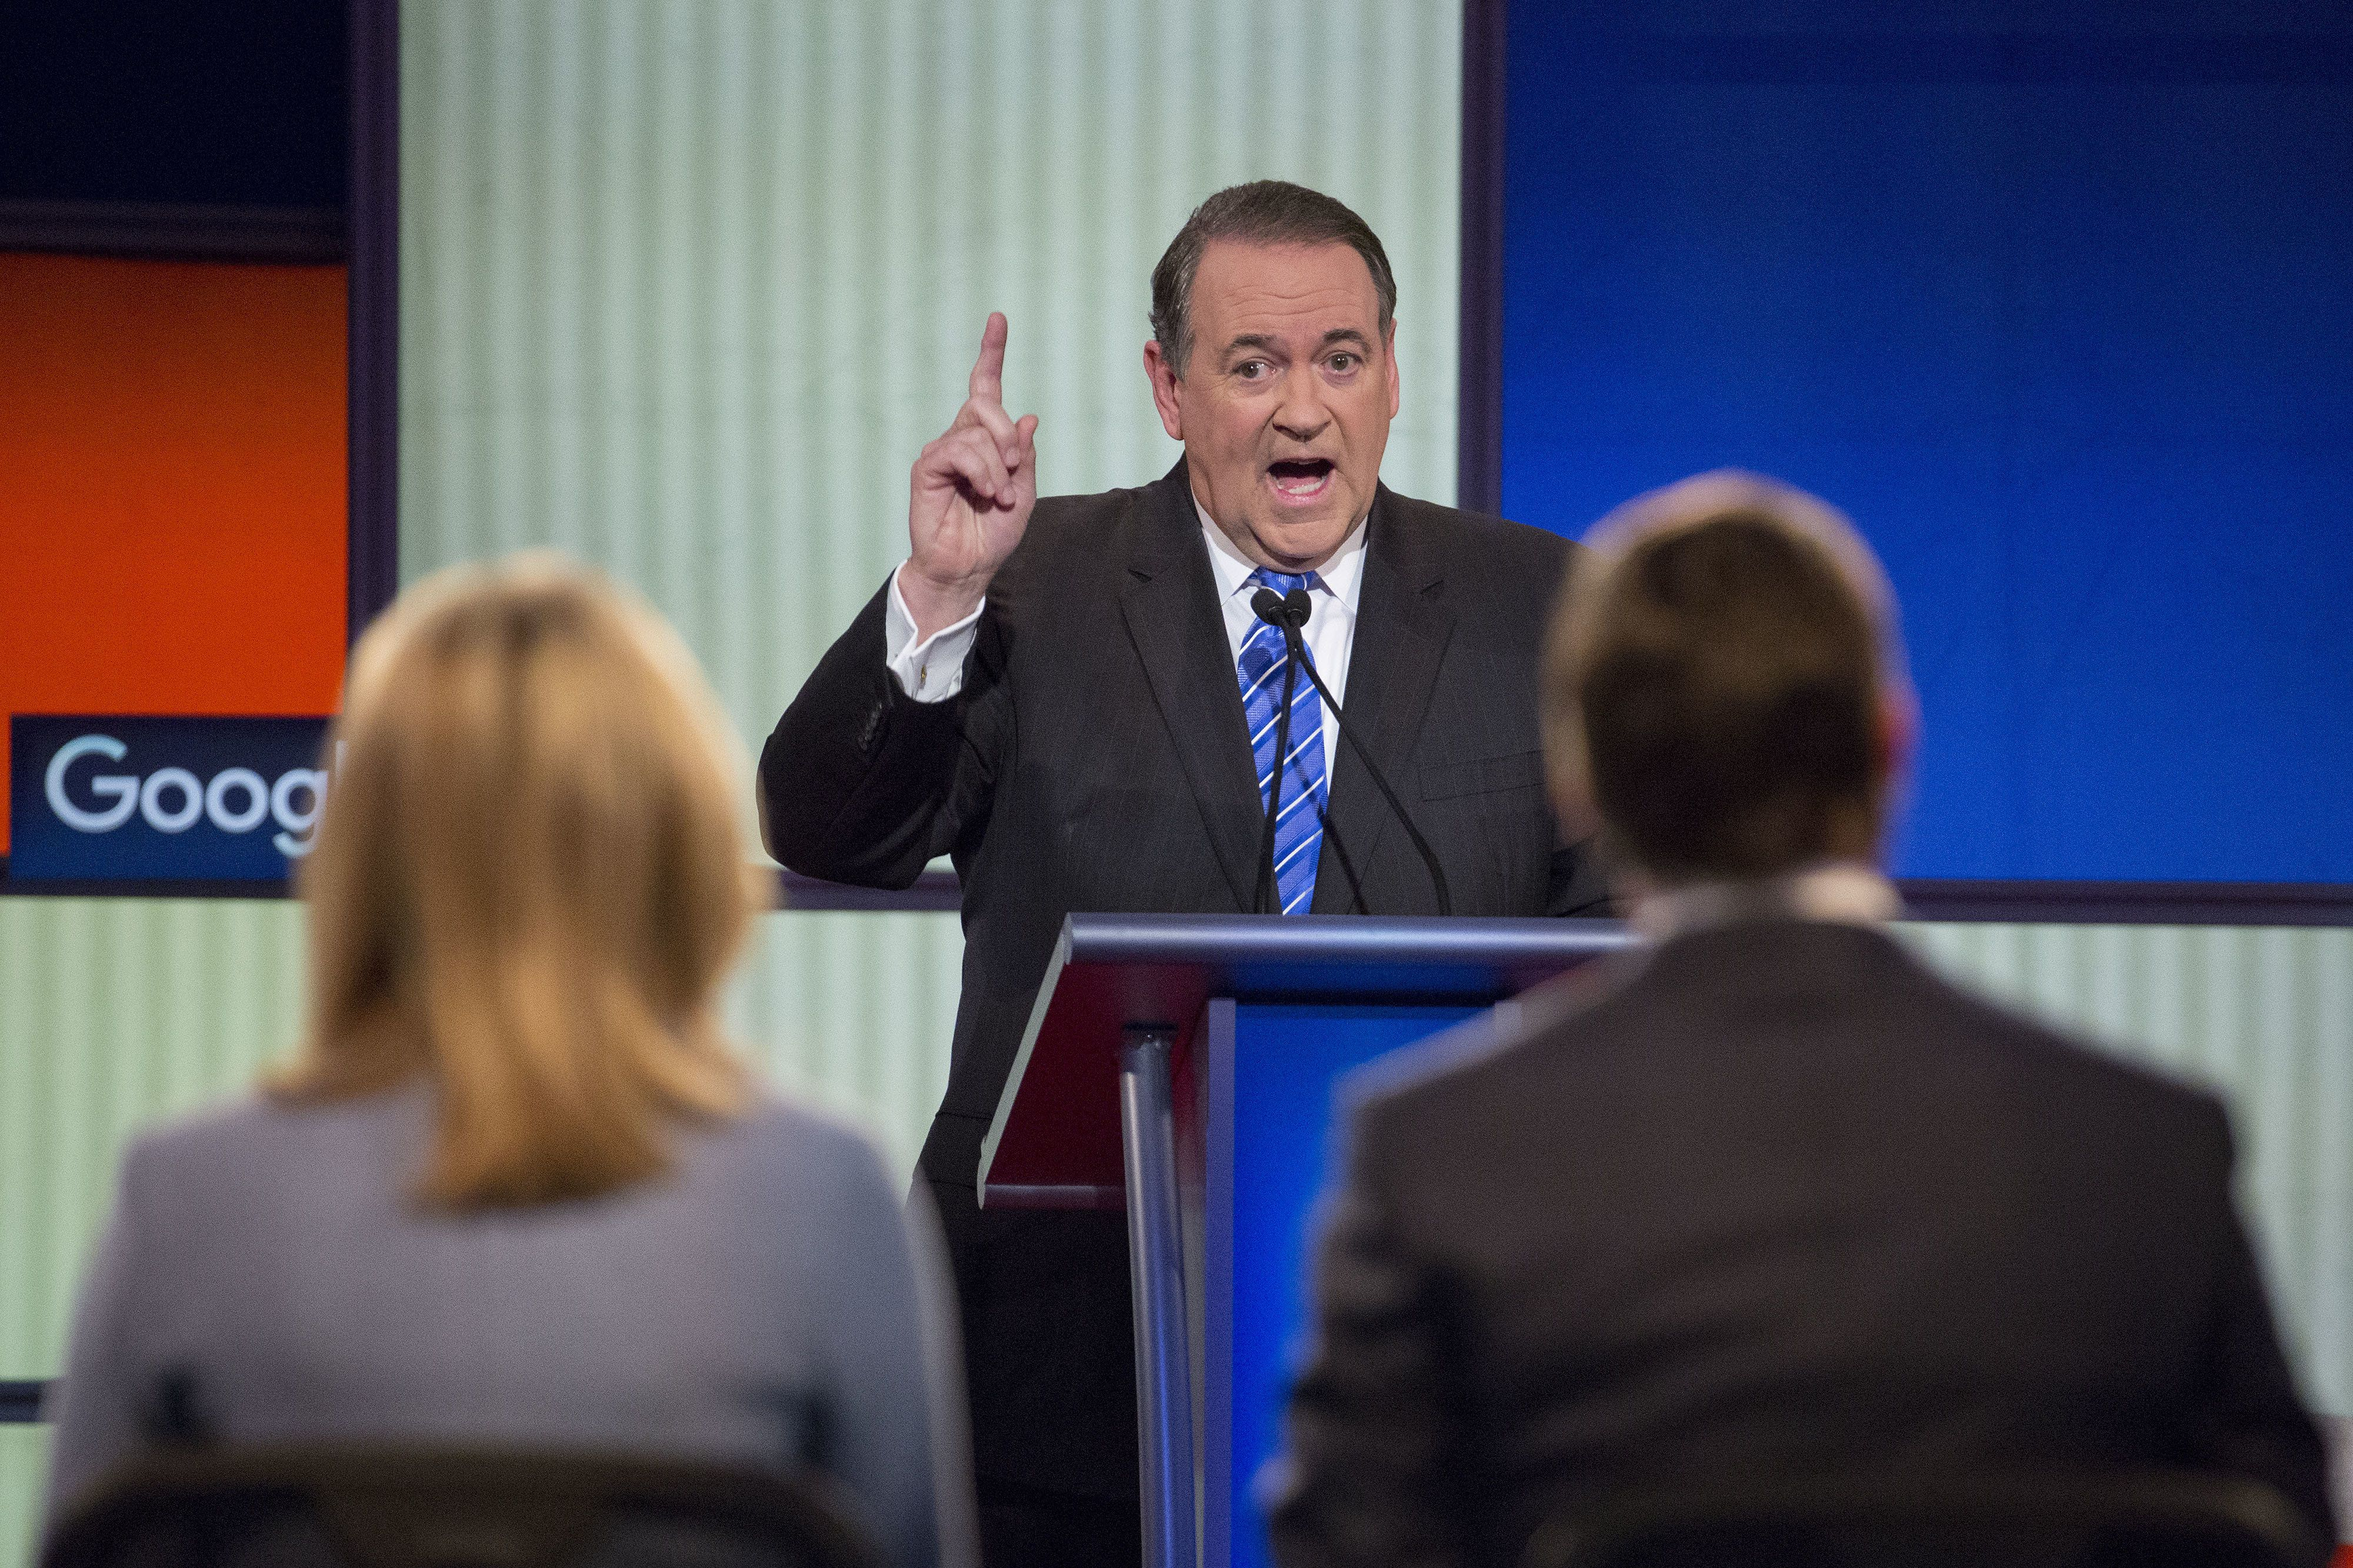 Mike Huckabee, former governor of Arkansas and 2016 Republican presidential candidate, speaks during the Republican presidential candidate debate at the Iowa Events Center in Des Moines, Iowa, U.S., on Thursday, Jan. 28, 2016. Candidates from both parties are crisscrossing Iowa, an agricultural state of about 3 million people in the U.S. heartland that will hold the first votes of the 2016 election on Feb. 1. Photographer: Daniel Acker/Bloomberg via Getty Images